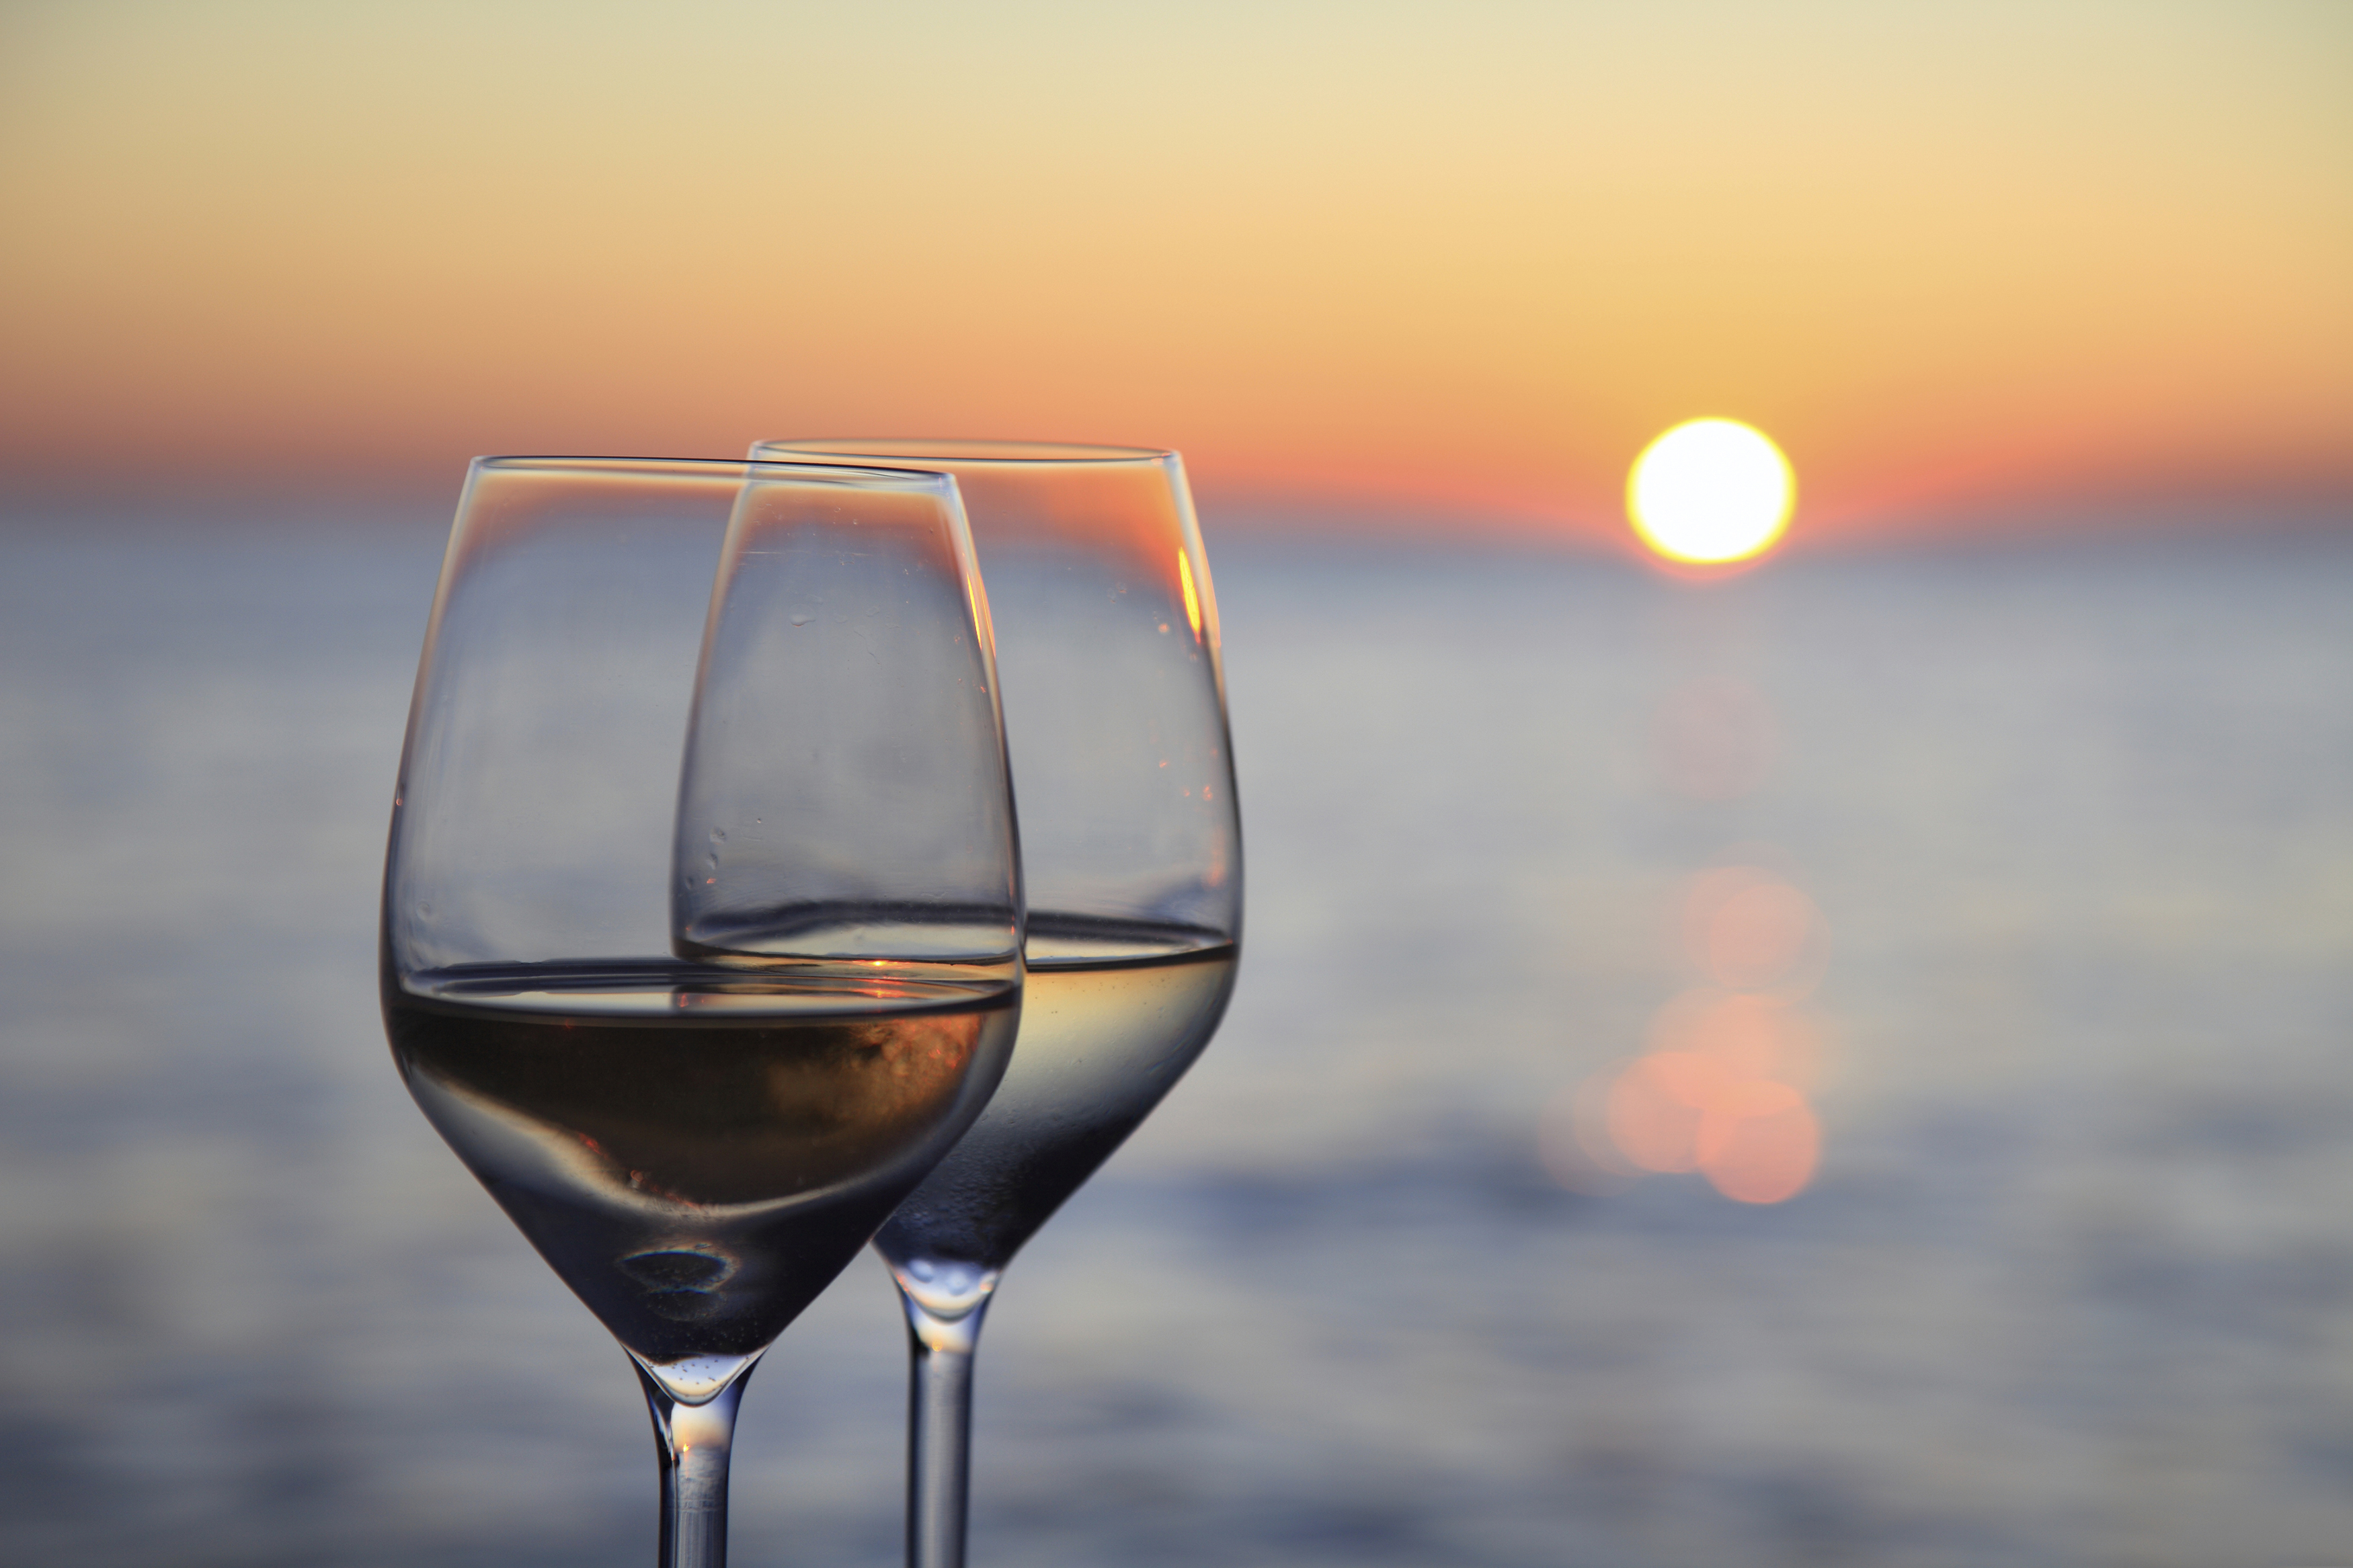 Glass of wine in front of a stunning Florida Keys sunset